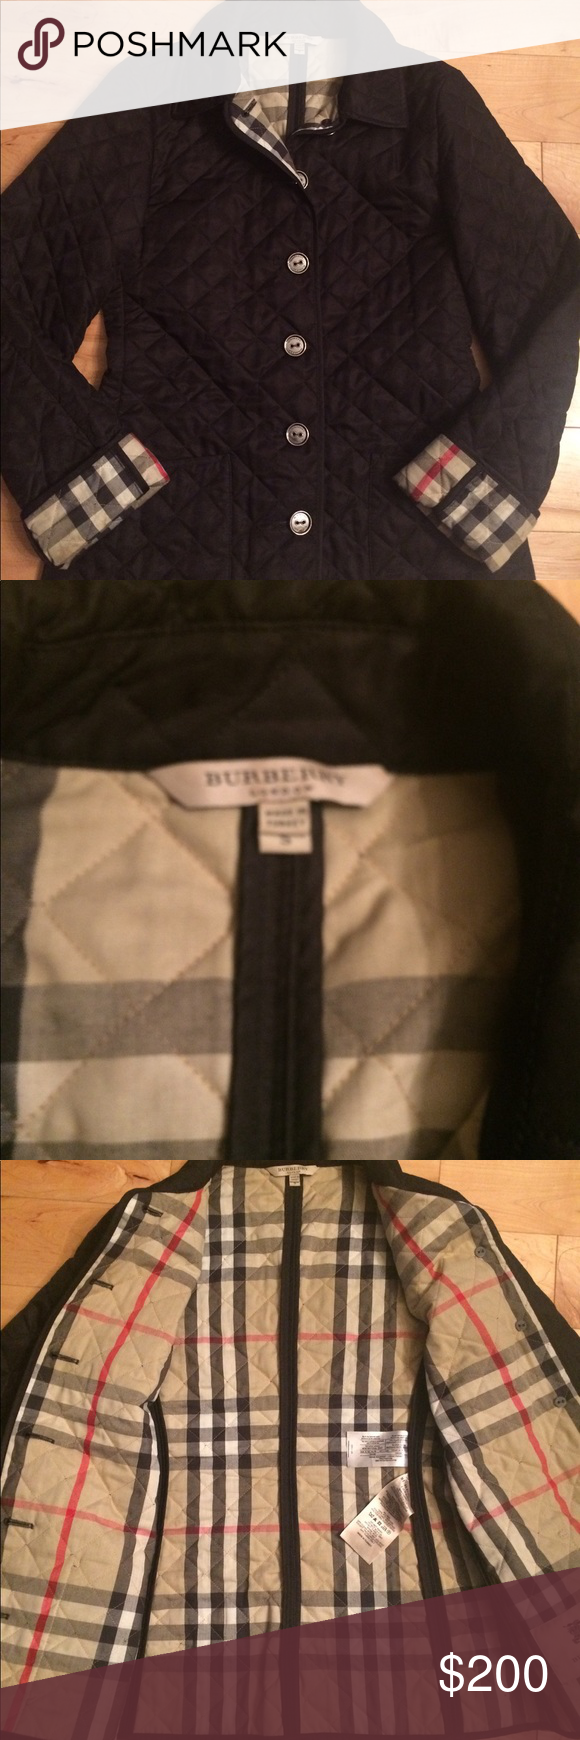 Burberry quilted jacket made in turkey